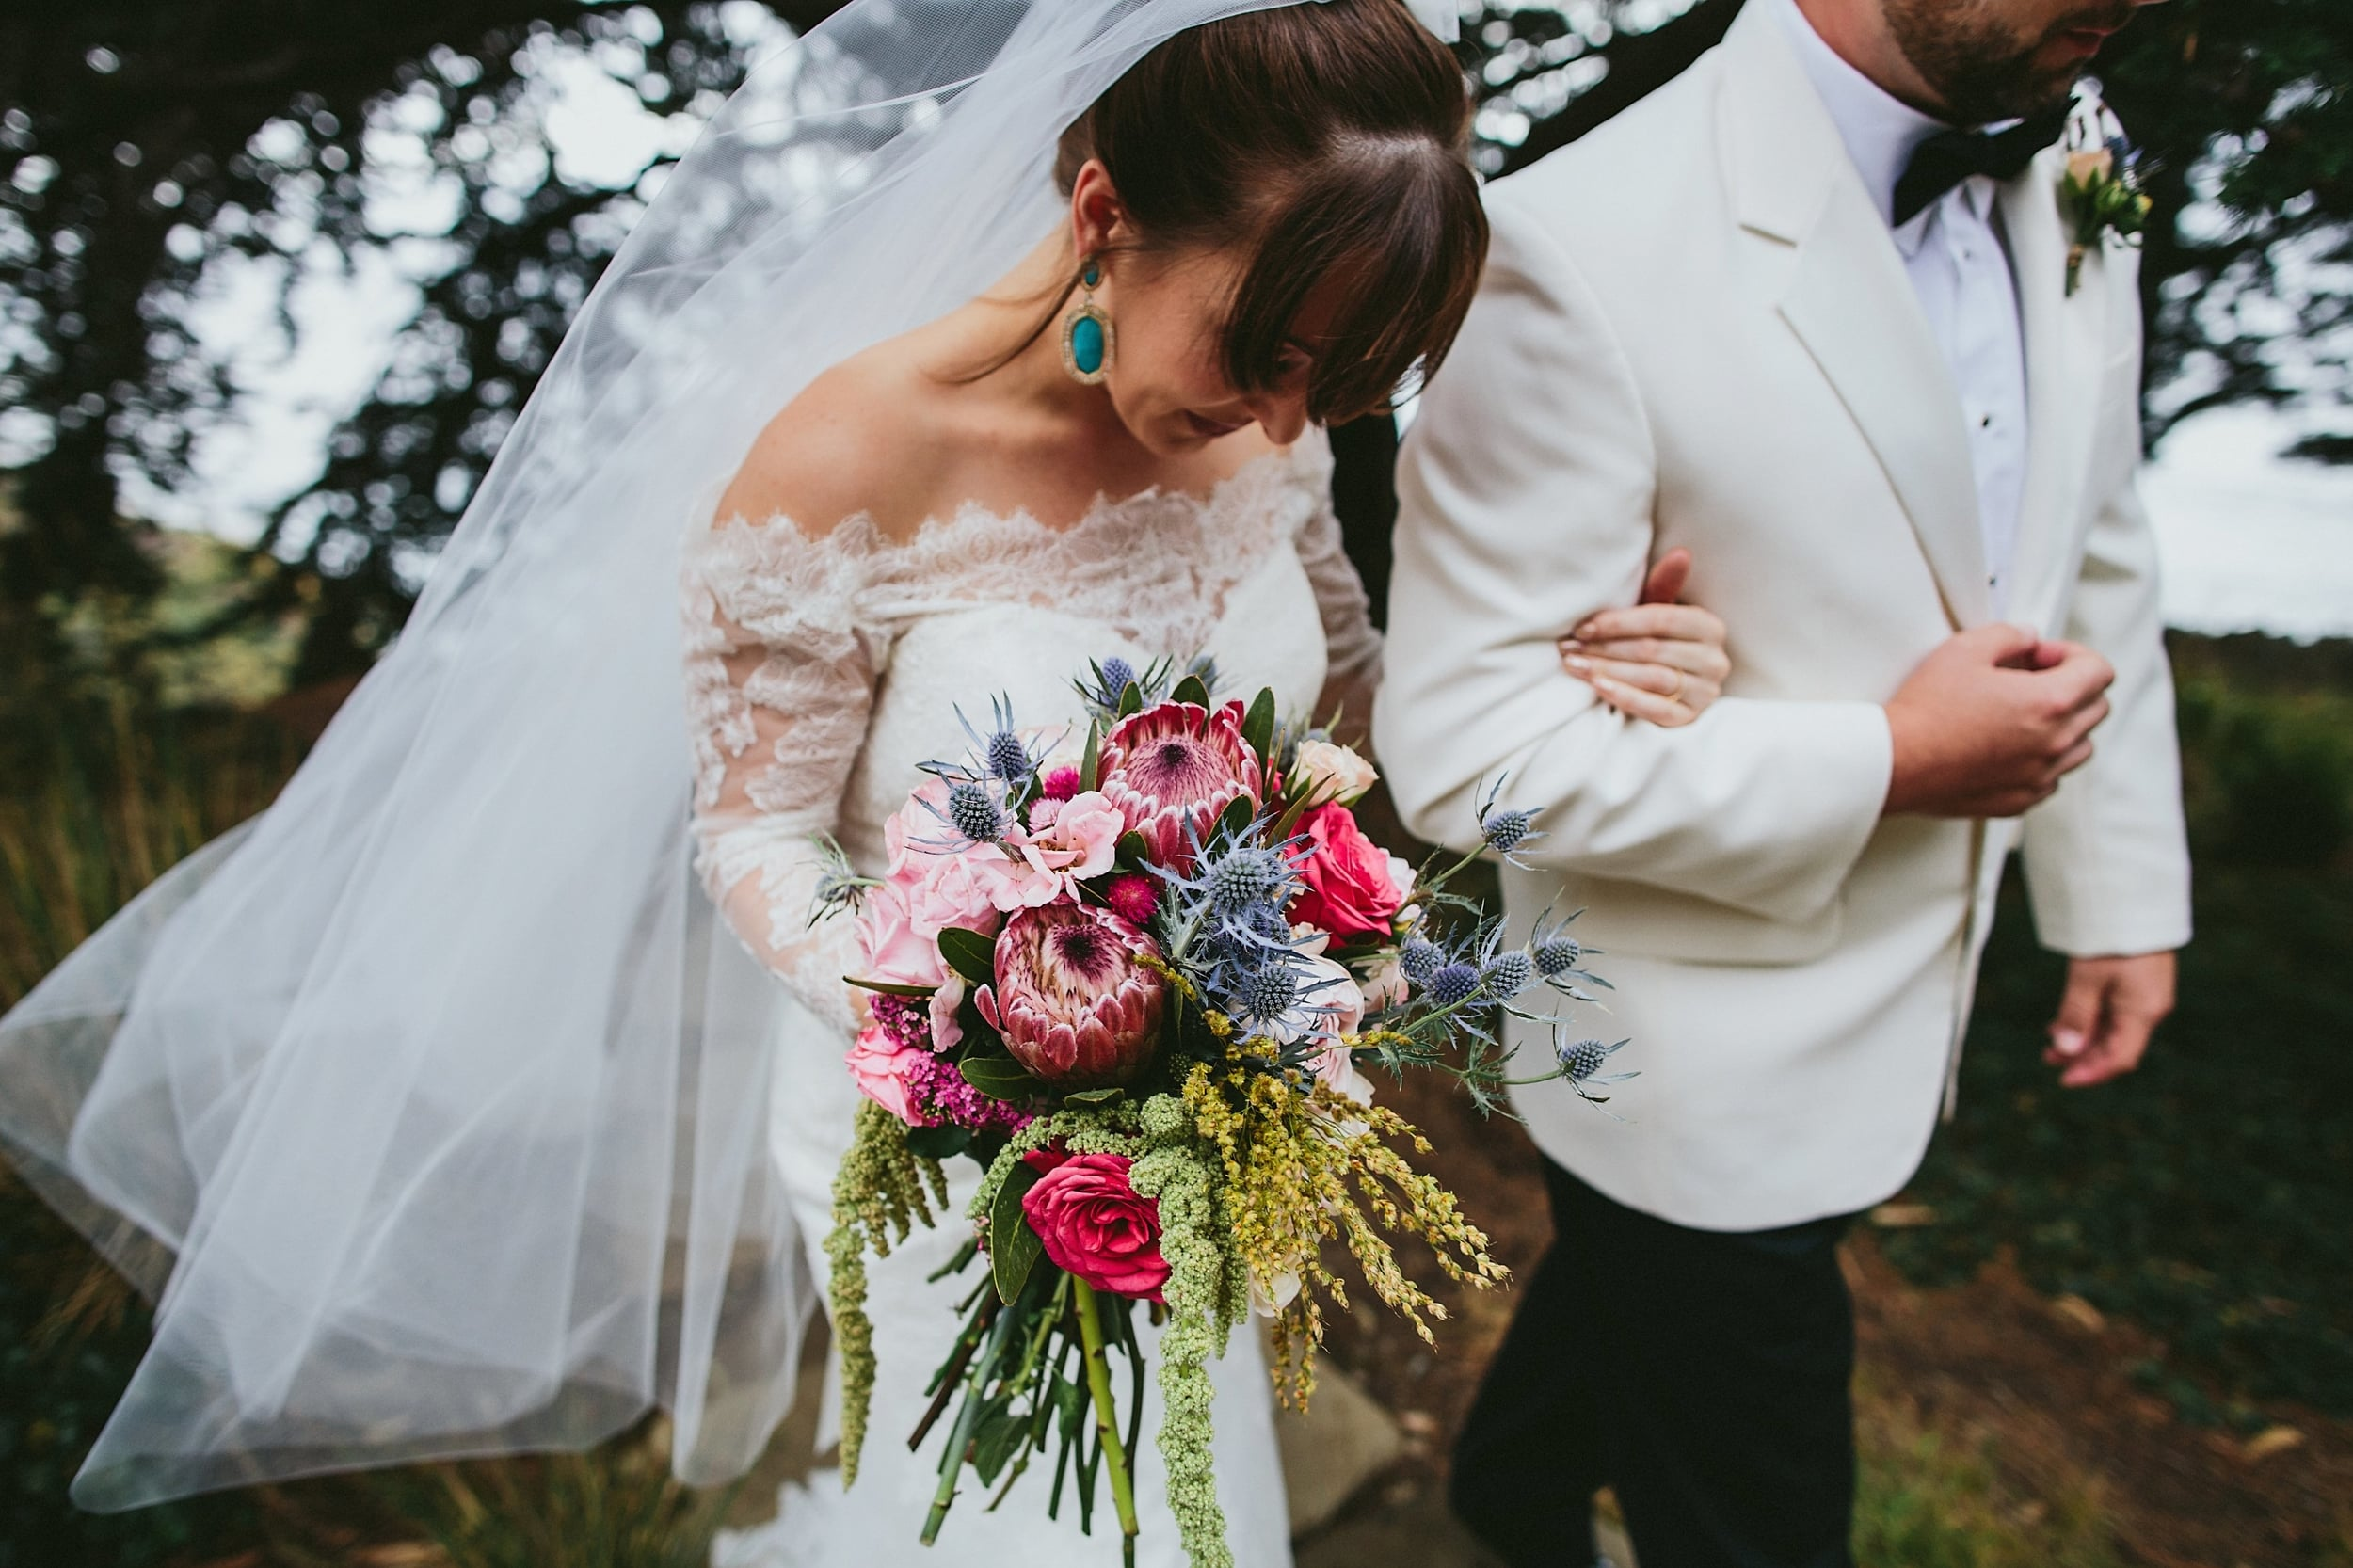 Bride Walking with Vibrant Bouquet